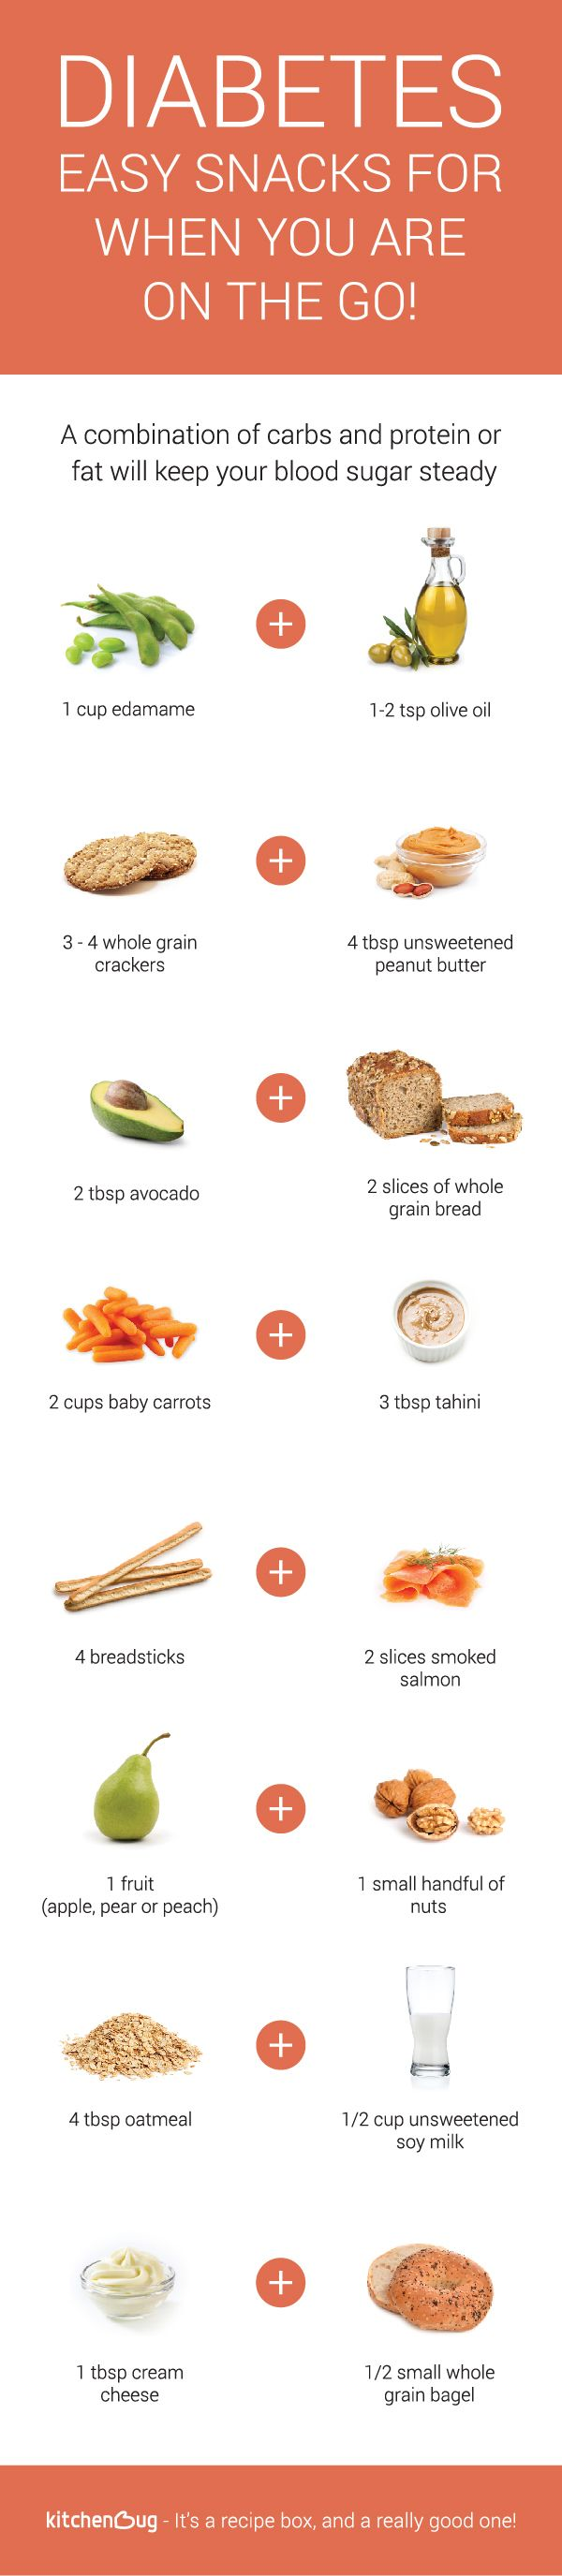 216 best diabetic food choices images on pinterest diabetic simple snacks for diabetics easy combinations that are healthy and delicious healthy foods for diabeticsrecipes for diabetics forumfinder Choice Image